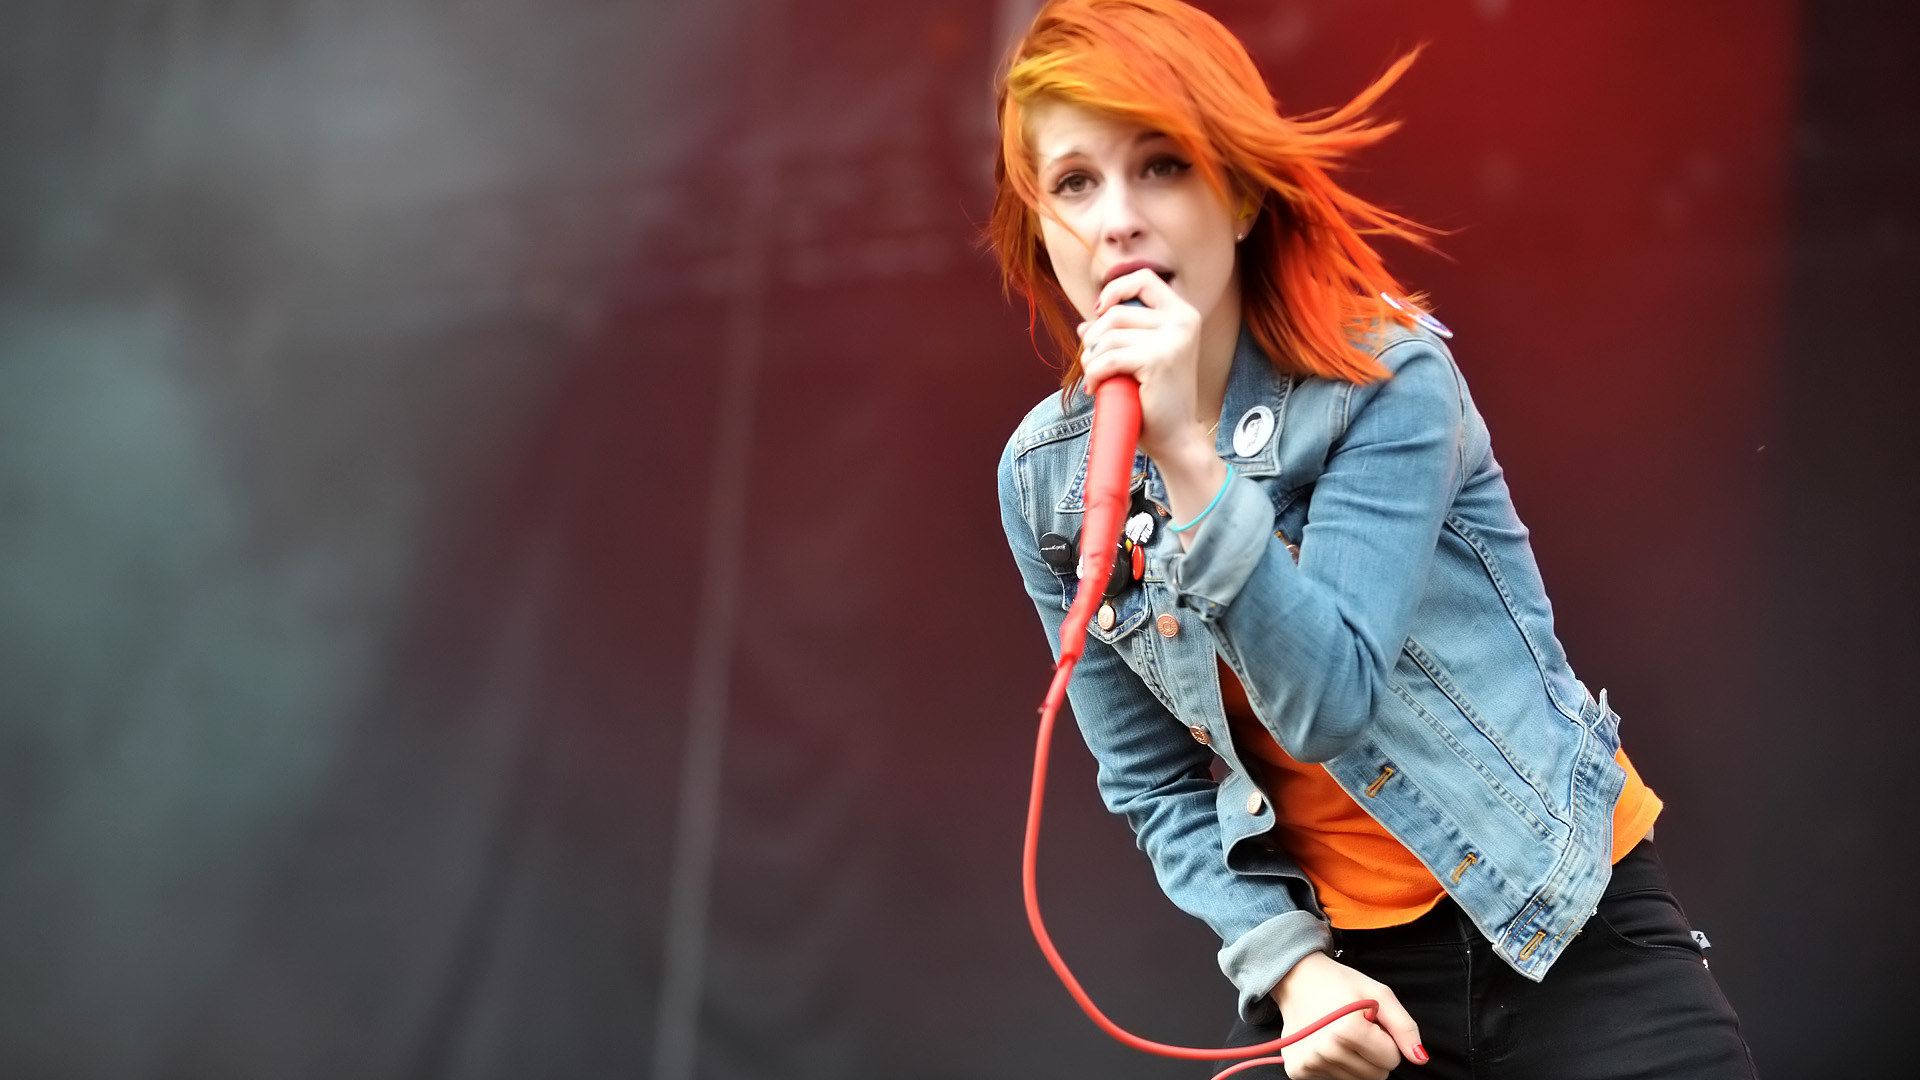 Hayley from Paramore yelyahwilliams